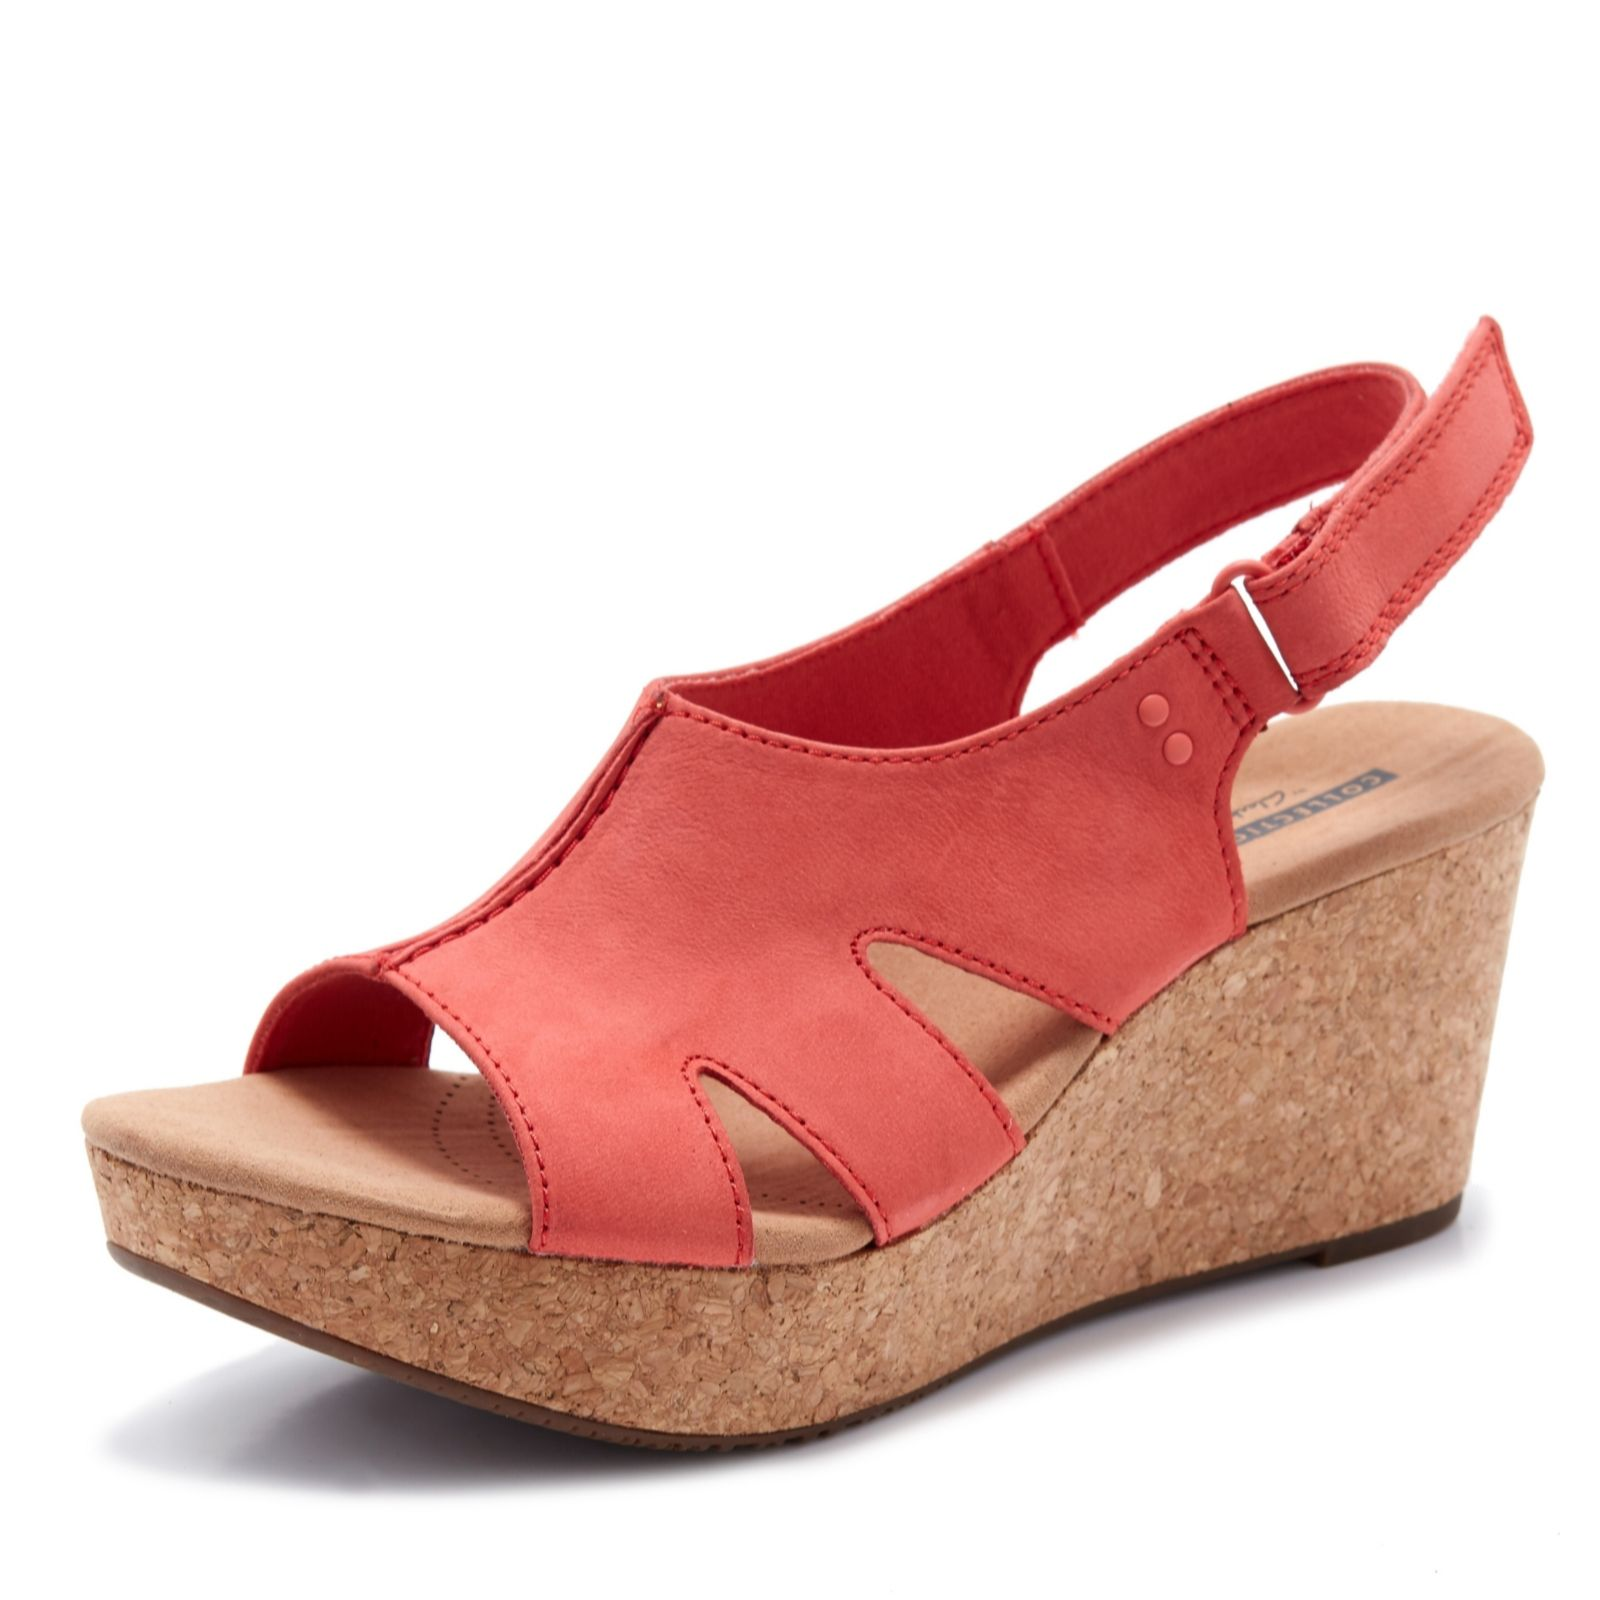 7024779fd01 Clarks Annadel Bari Wedge Sandal Standard Fit - QVC UK